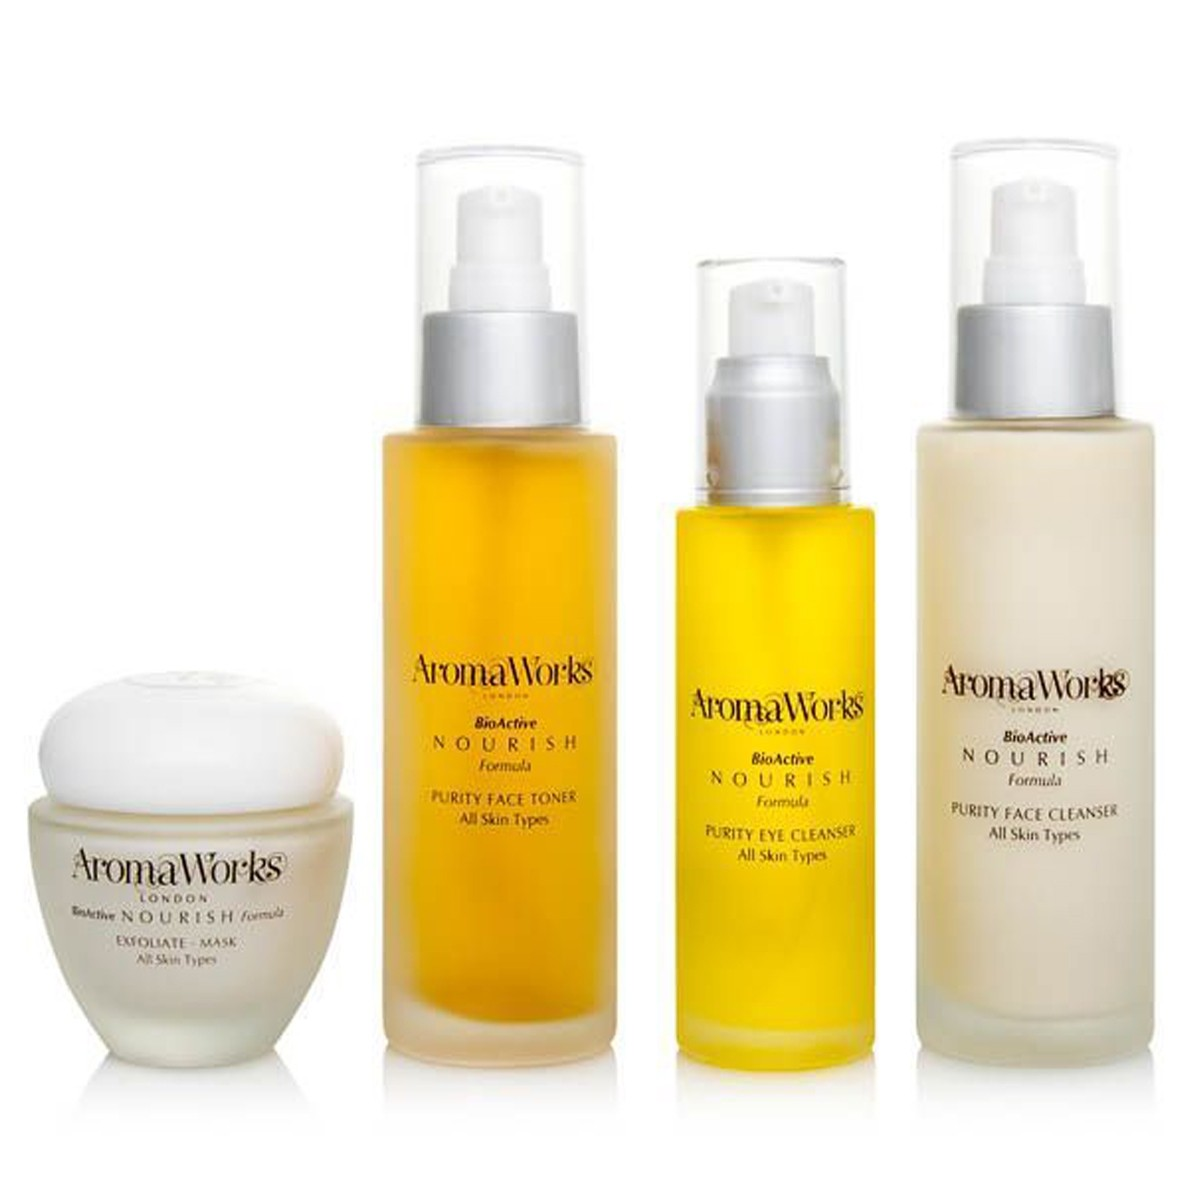 AromaWorks Nourish Face Care Set